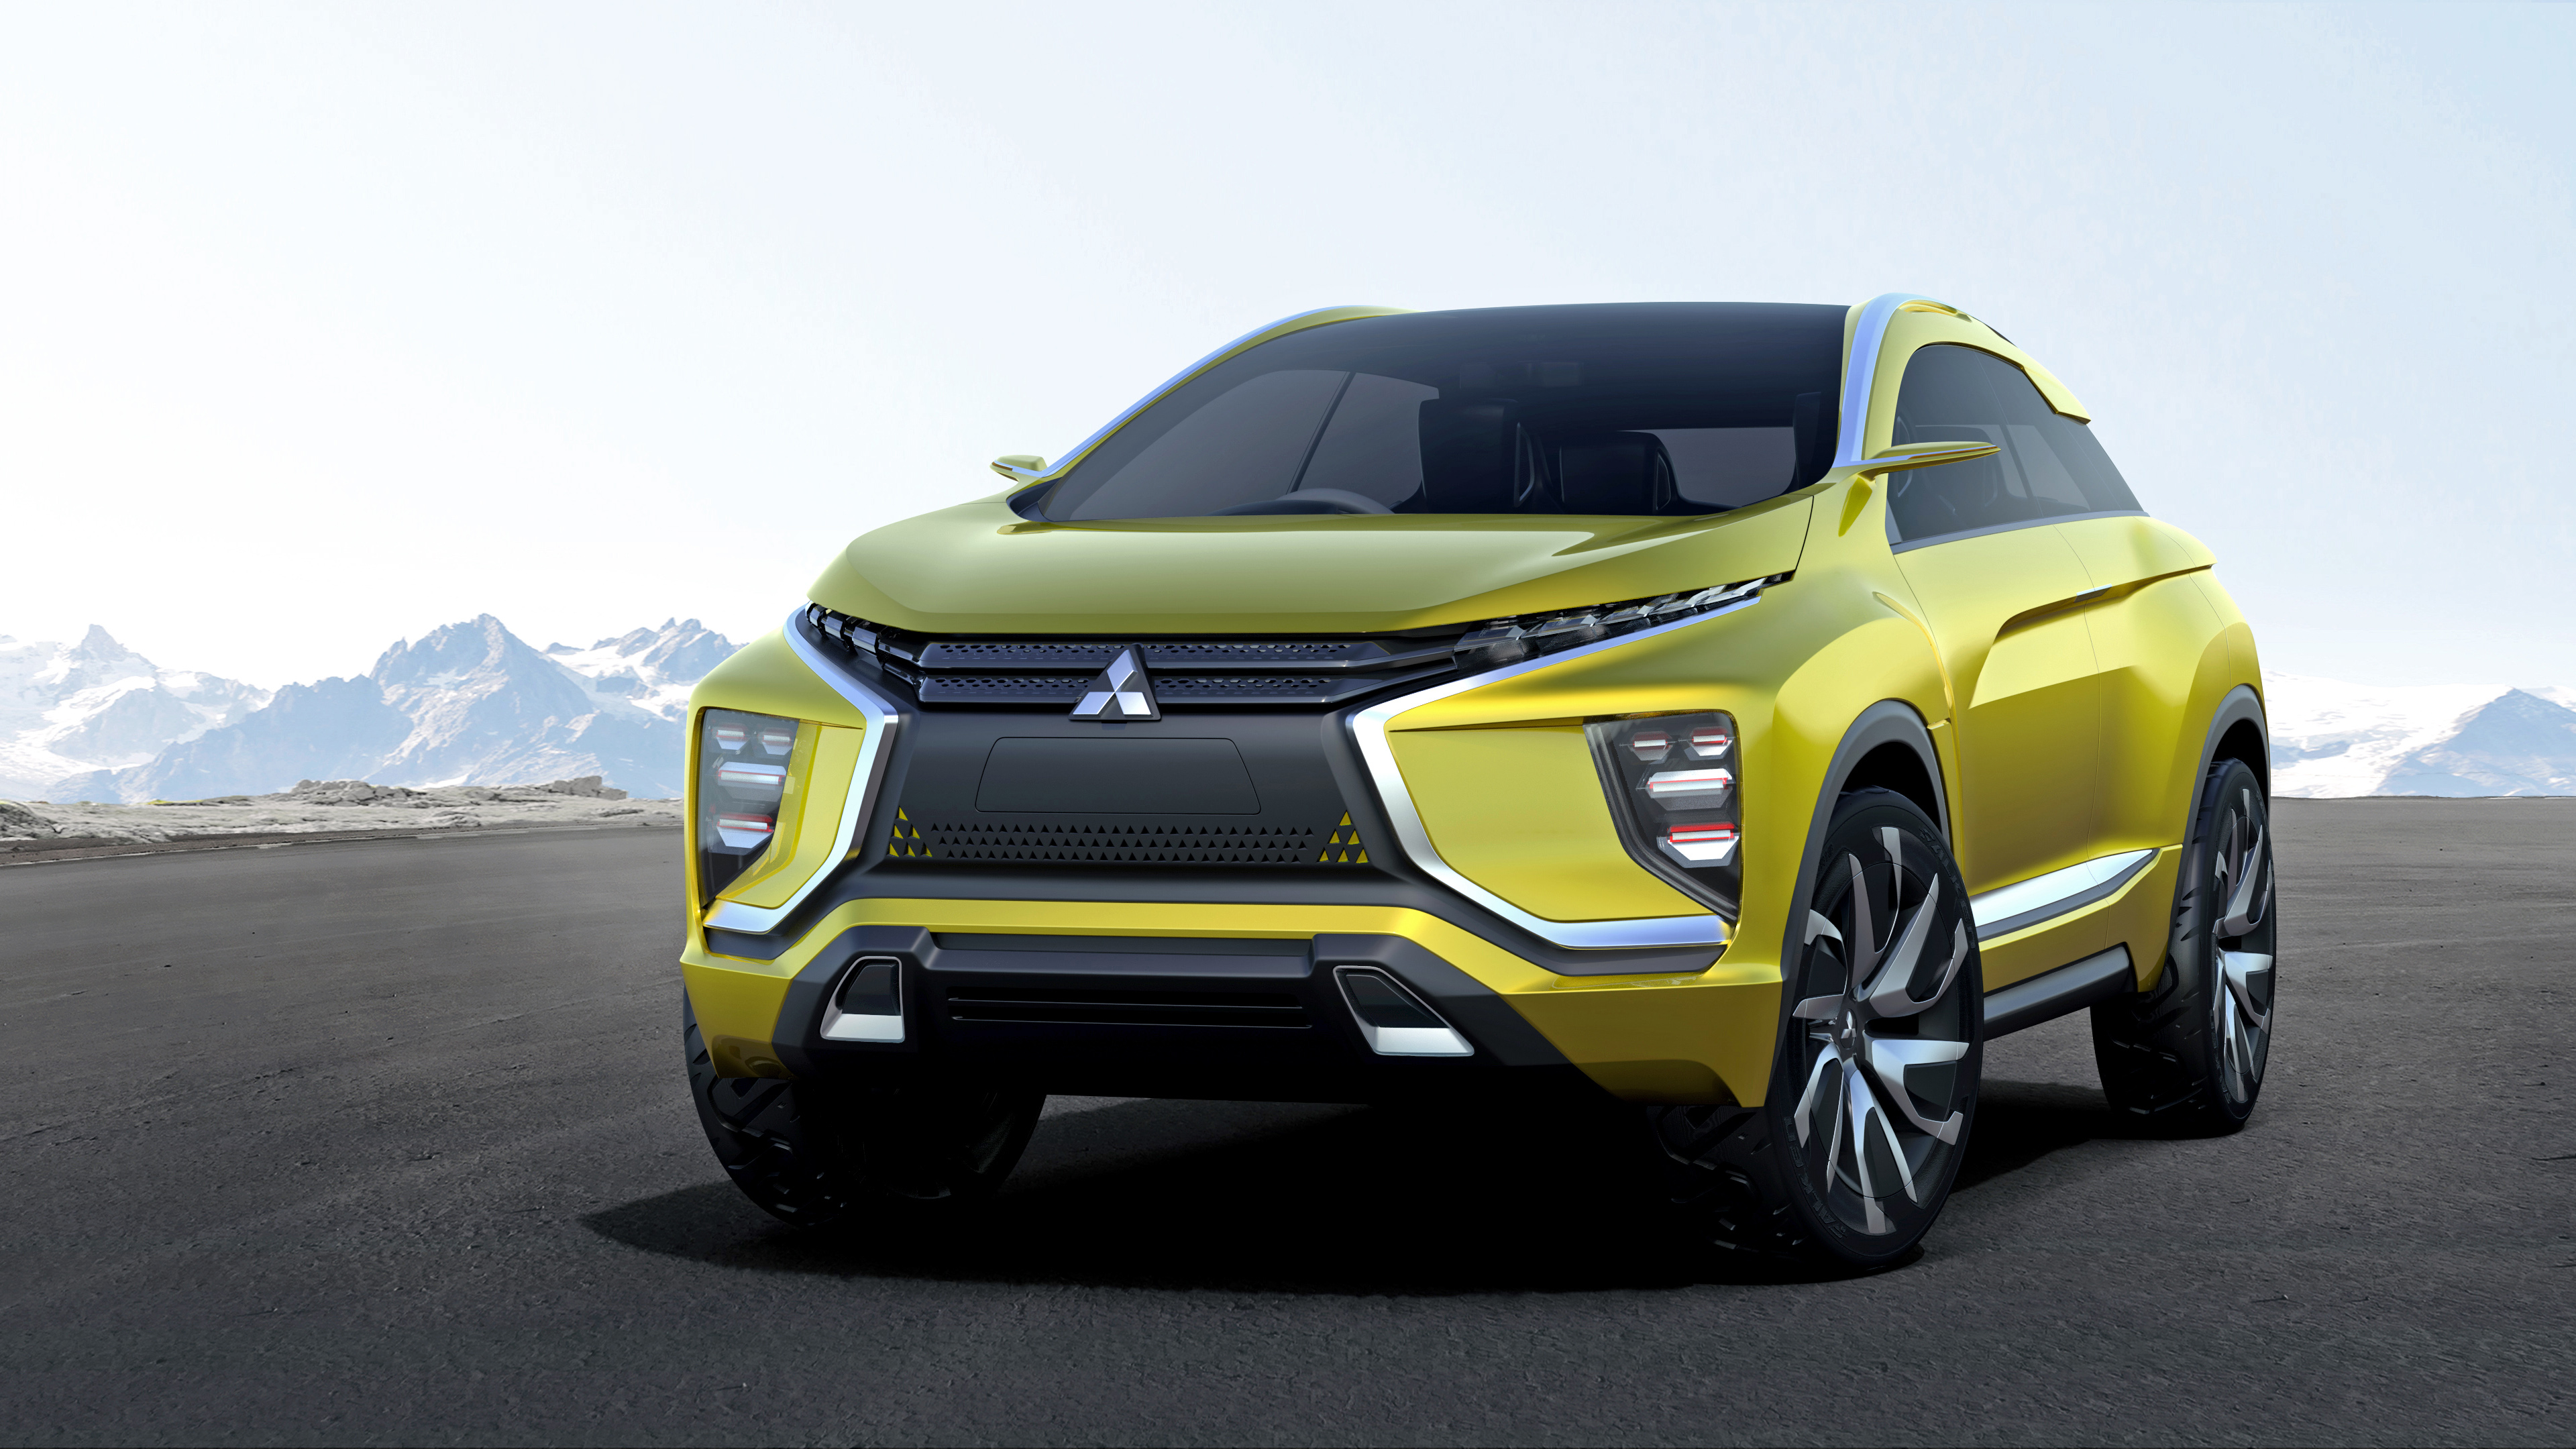 premiere see motor conference mitsubishi show crossover jpg geneva of must in concept the hybrid press xr ii plug phev